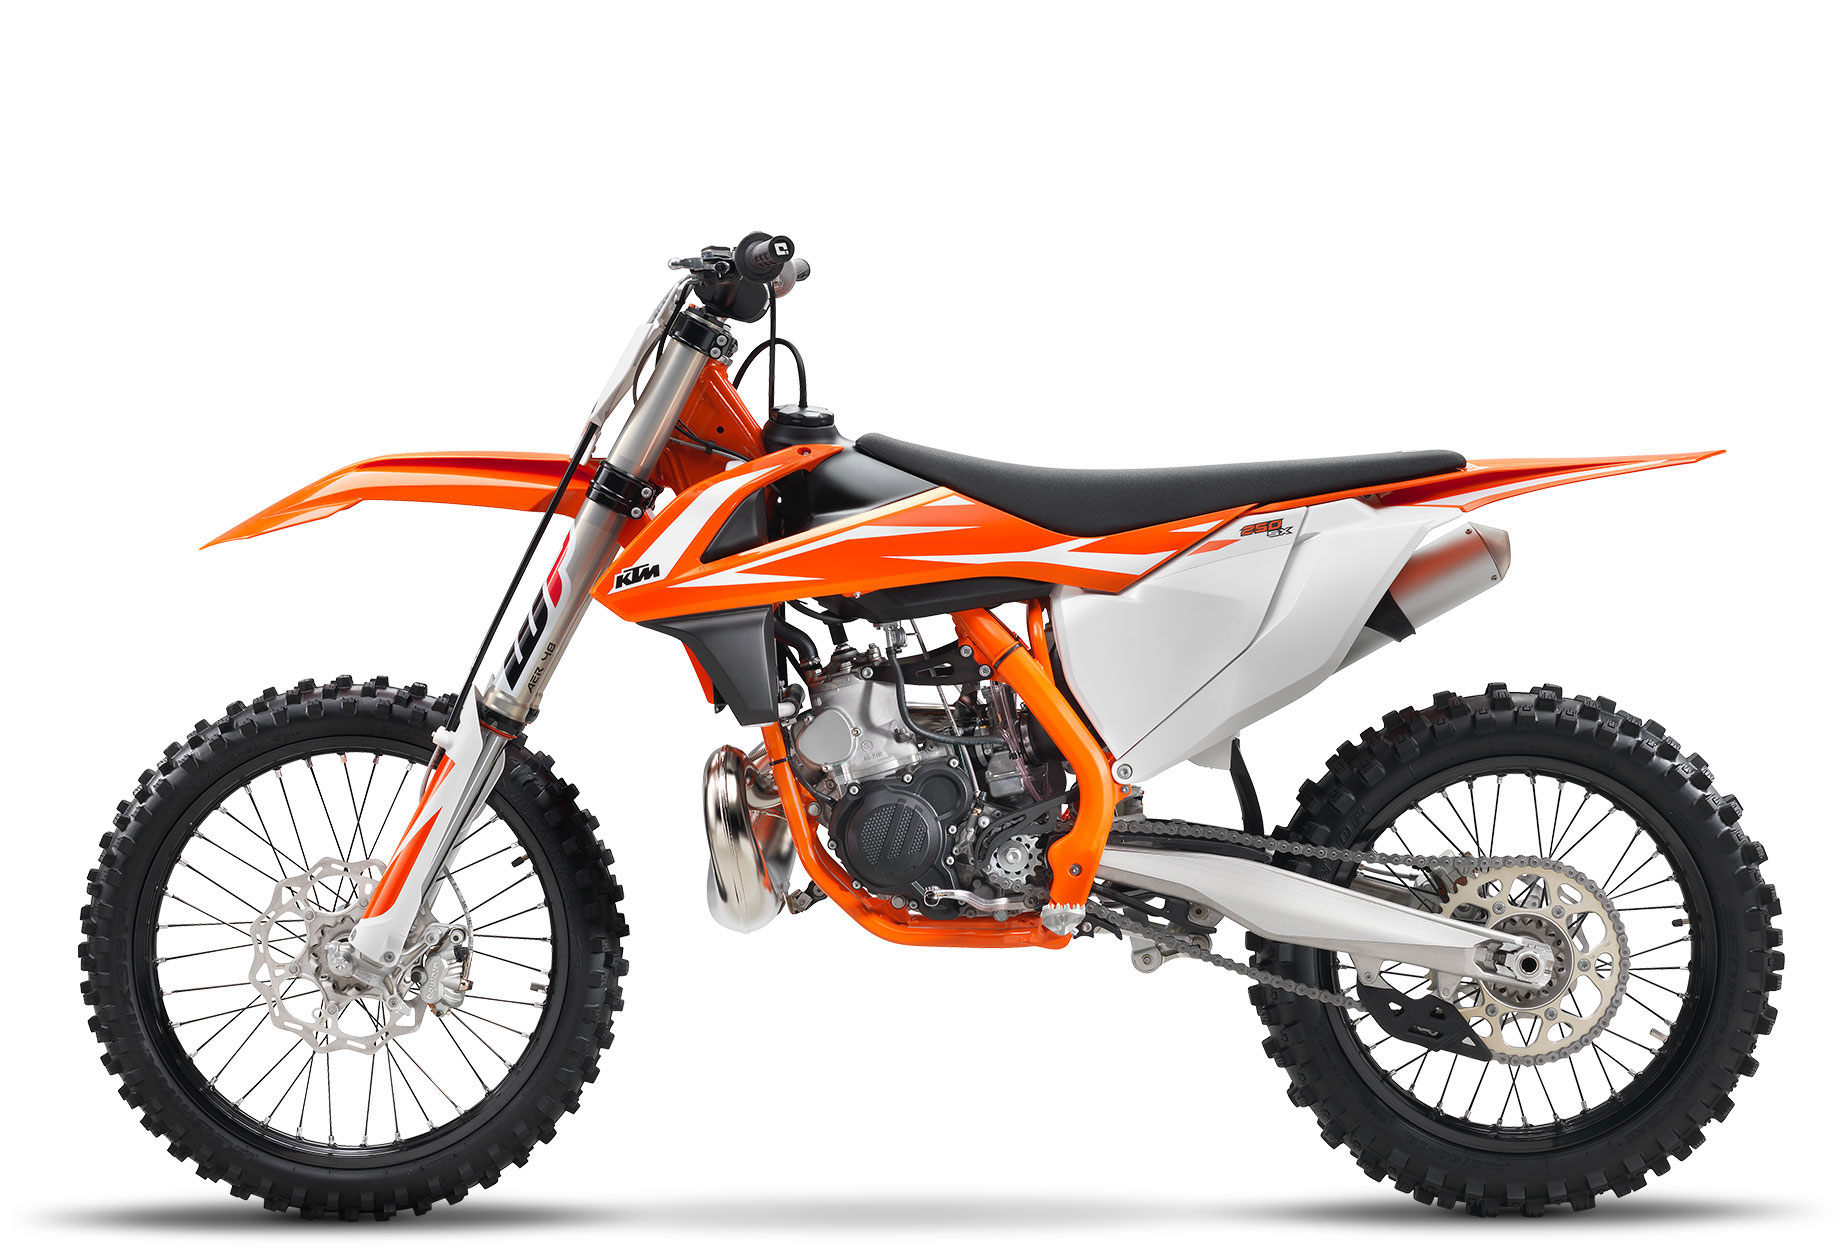 2018 ktm 250 sx review totalmotorcycle 2018 ktm 250 sx ccuart Gallery